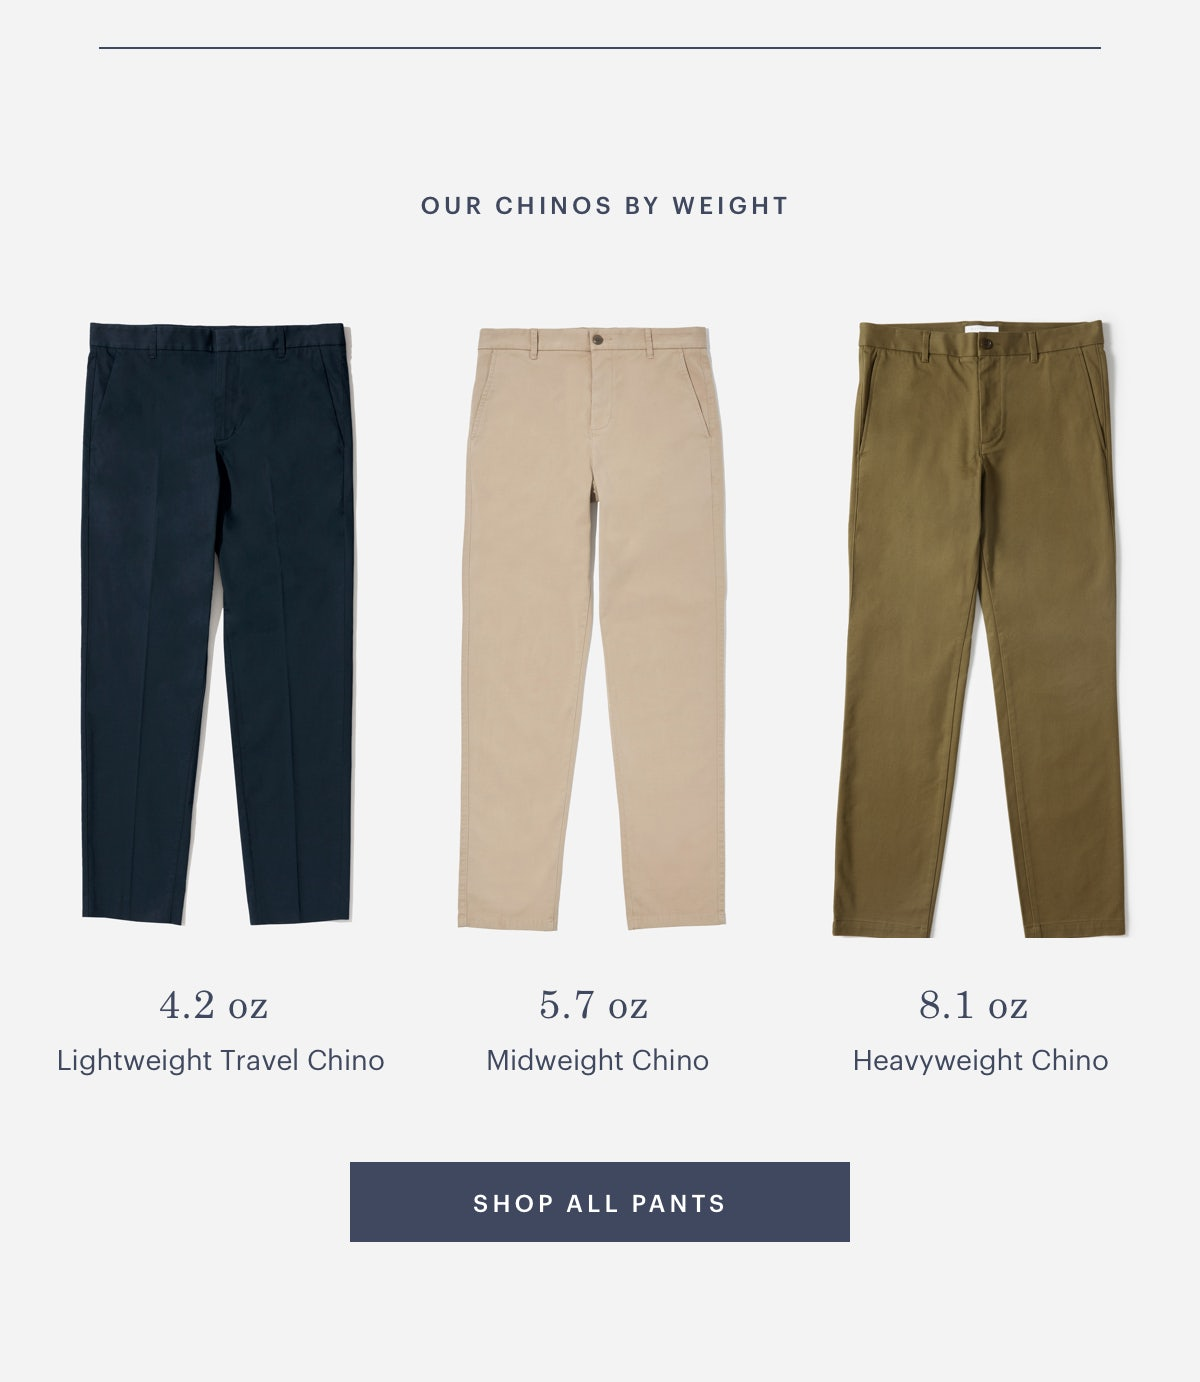 Our Chinos by weight.